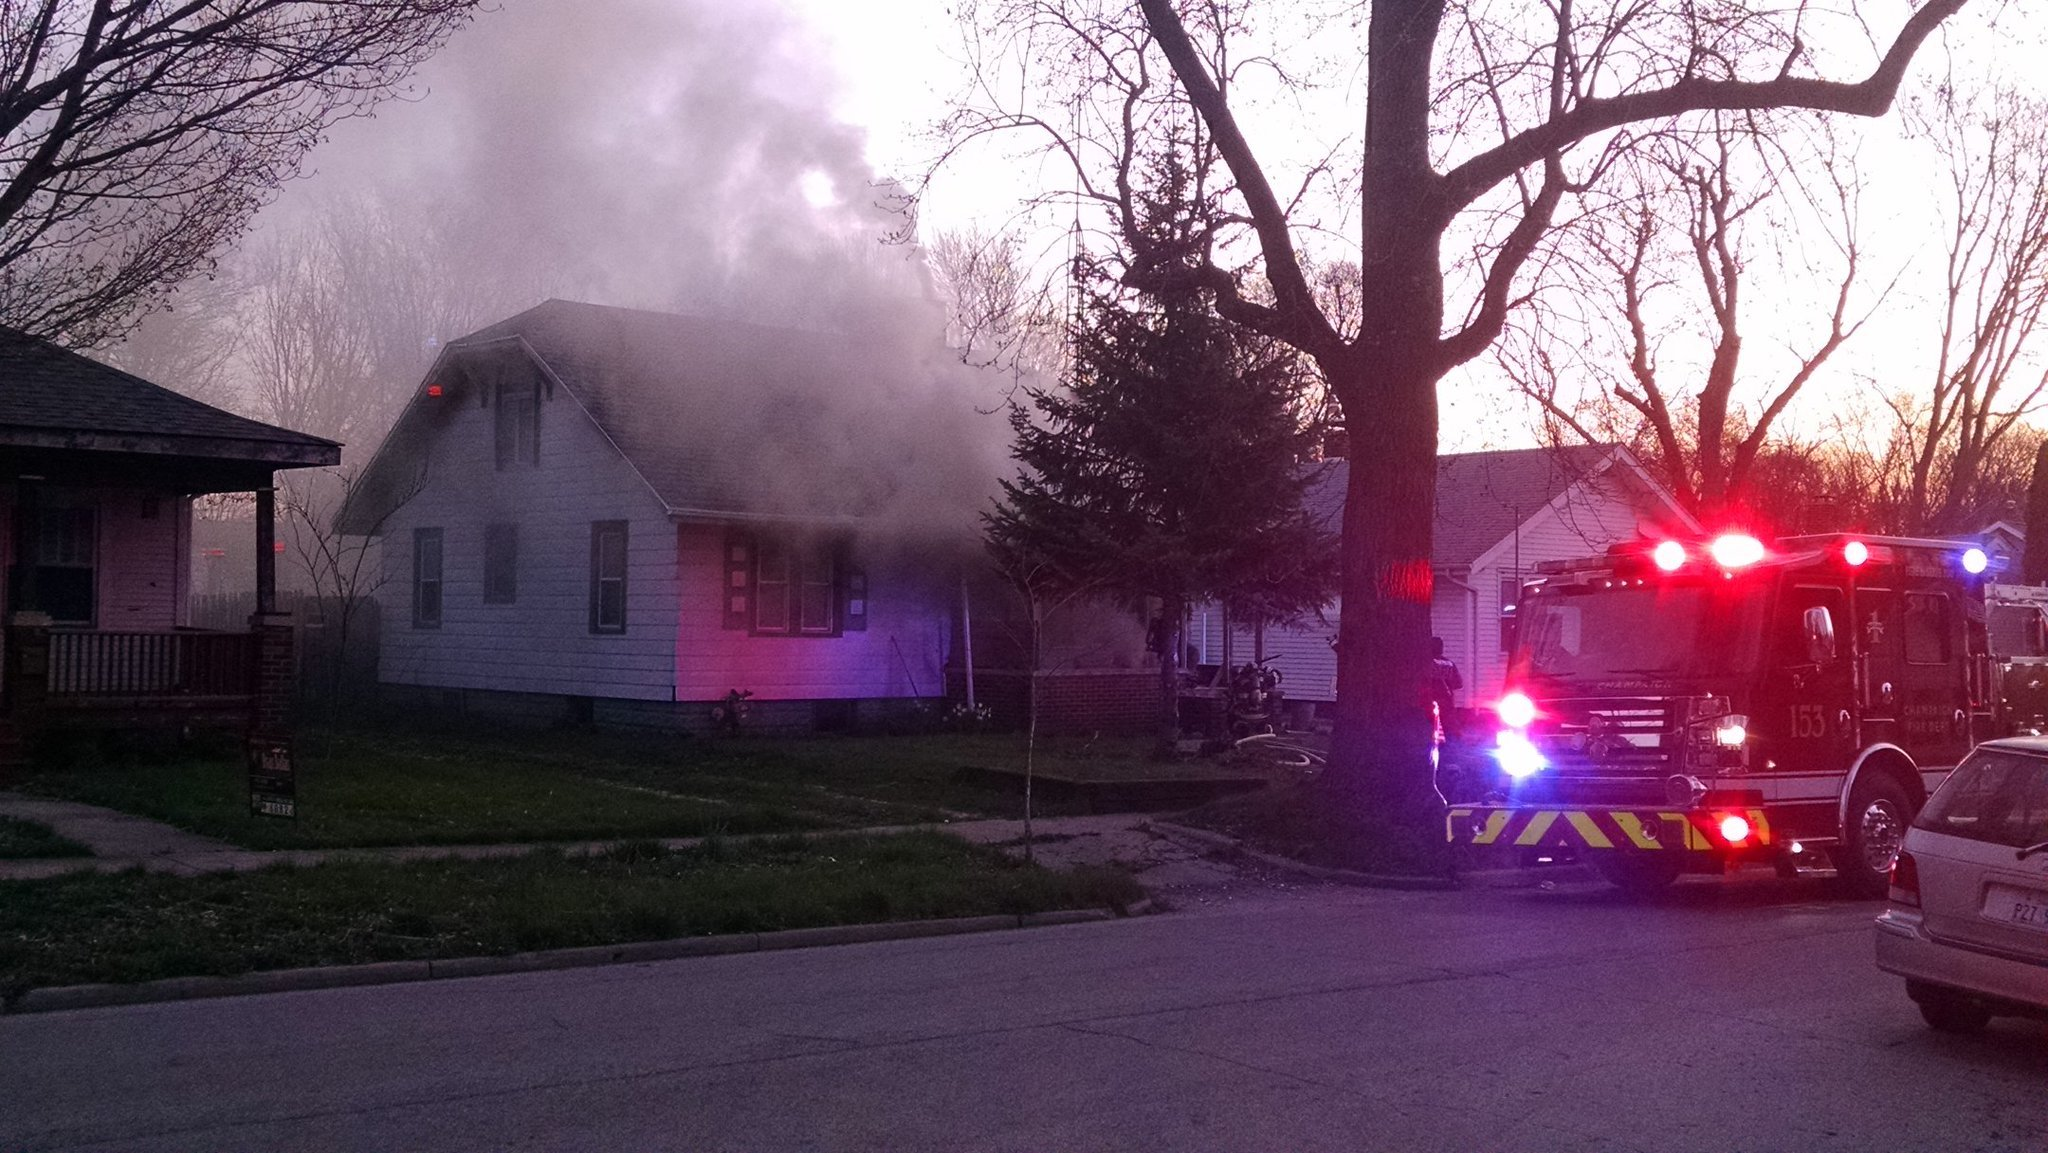 Neighbors alert residents of house fire